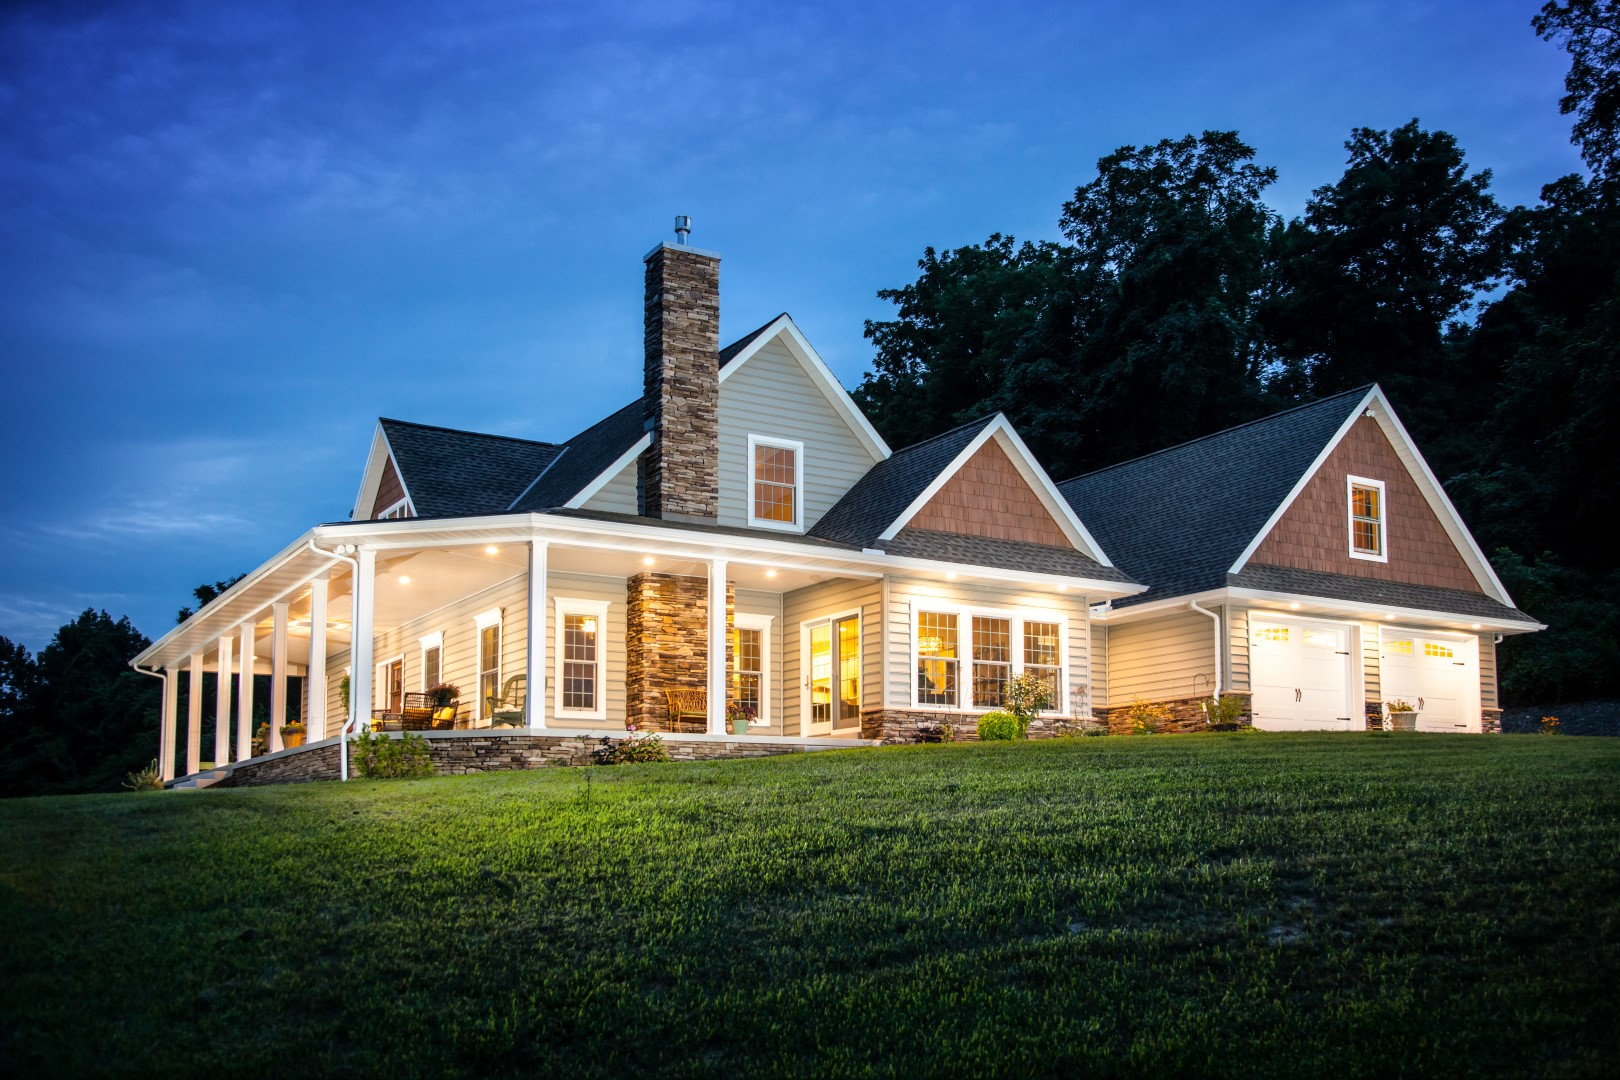 Custom home built in Wernersville, Berks County PA